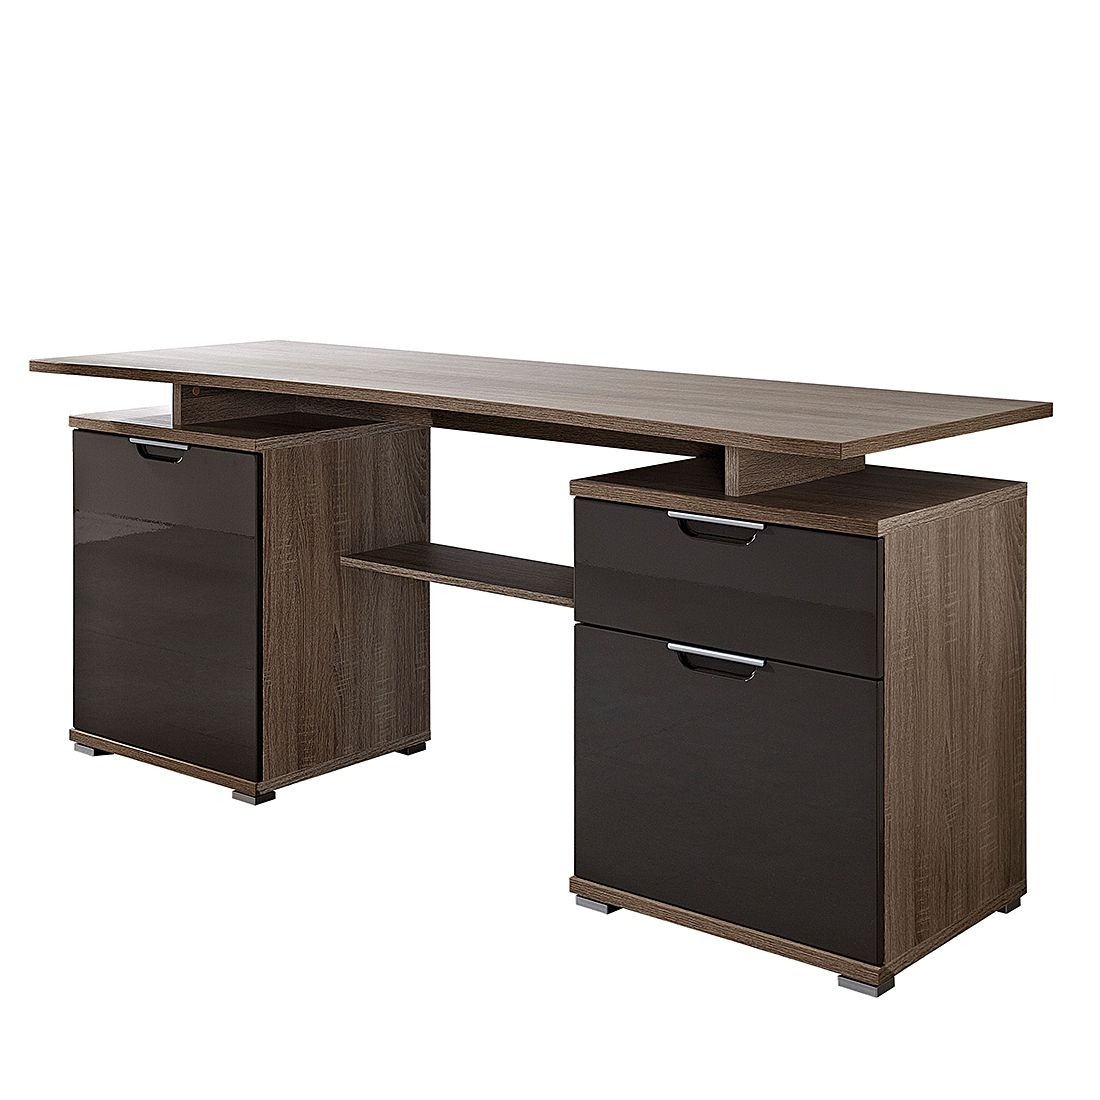 schreibtisch ludwig eiche dunkel graphit home24office g nstig online kaufen. Black Bedroom Furniture Sets. Home Design Ideas